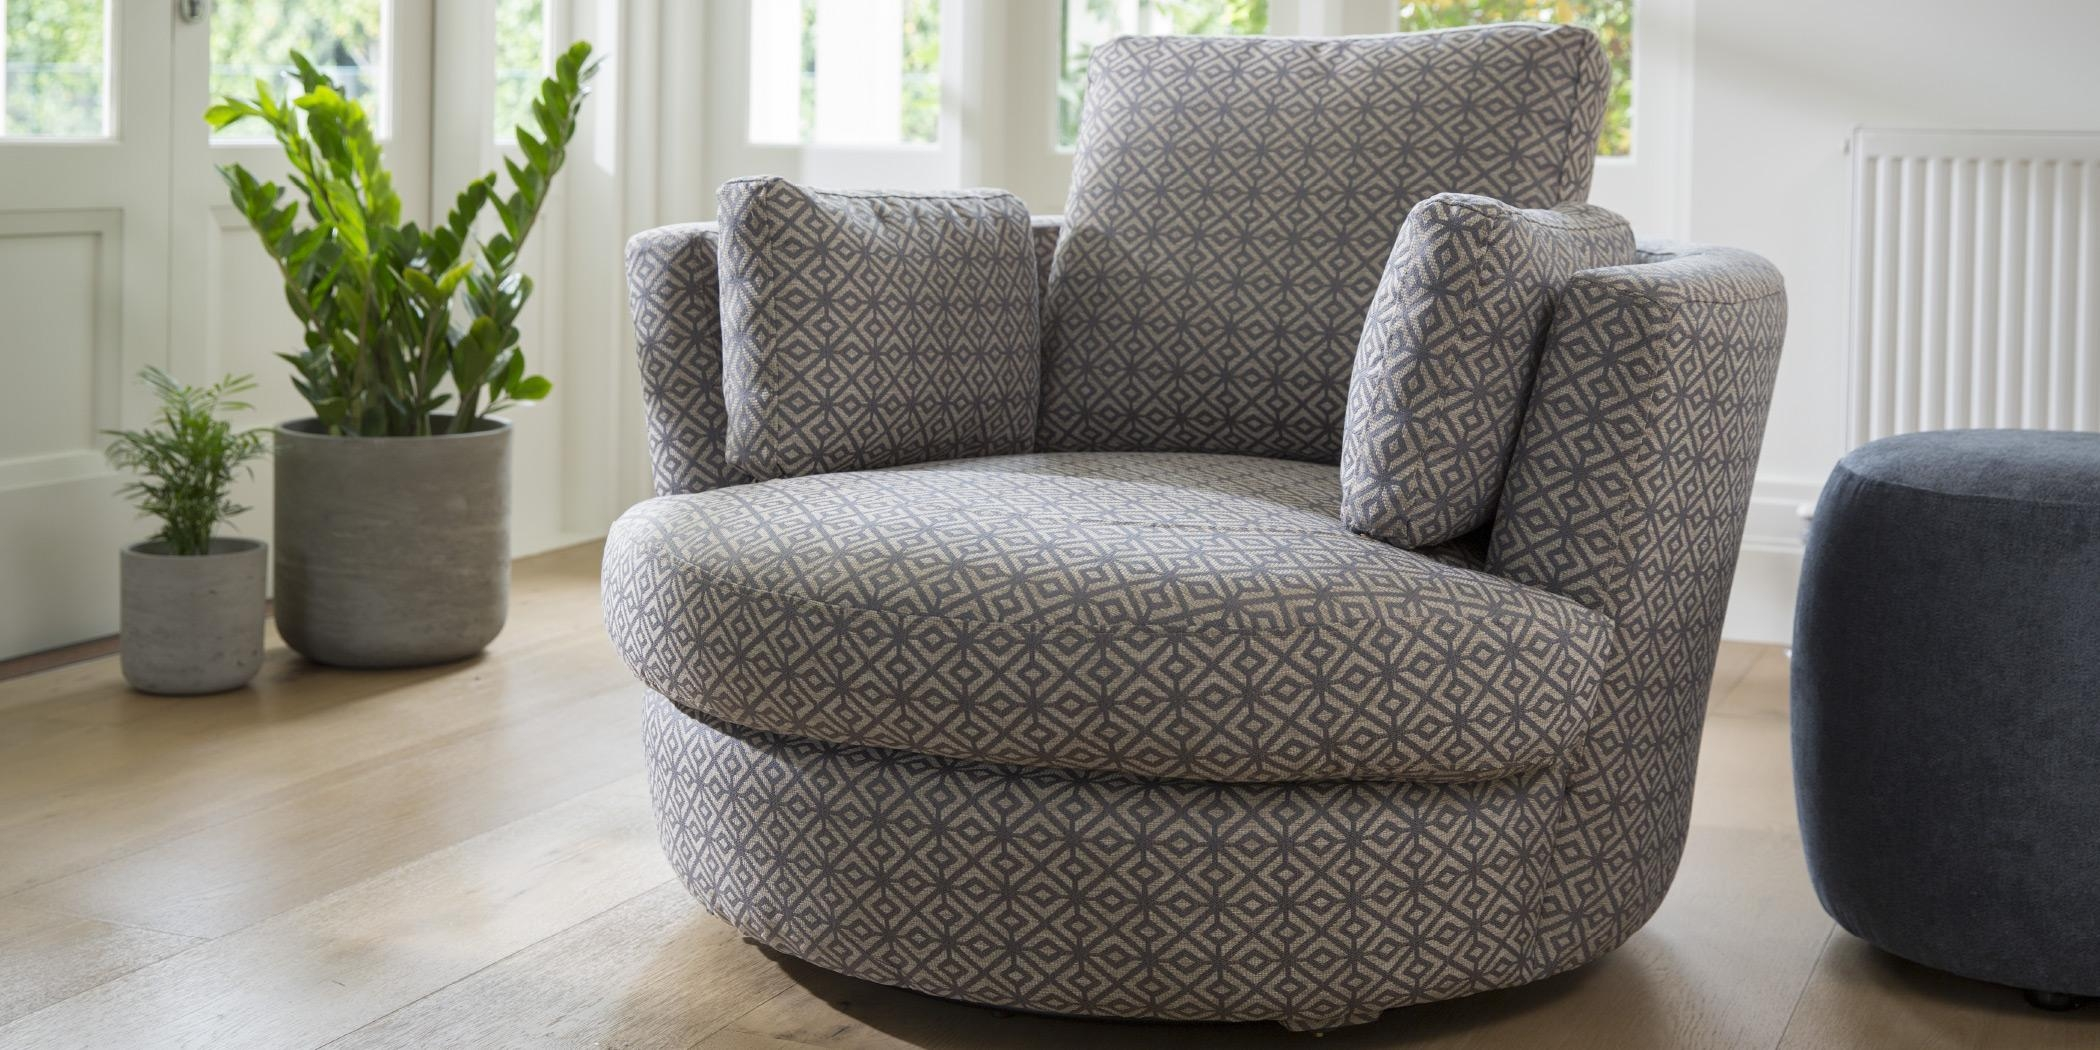 Snuggle Petite Chair   Leather, Fabric, Occasional Chairs   Plush In  Snuggle Sofas (